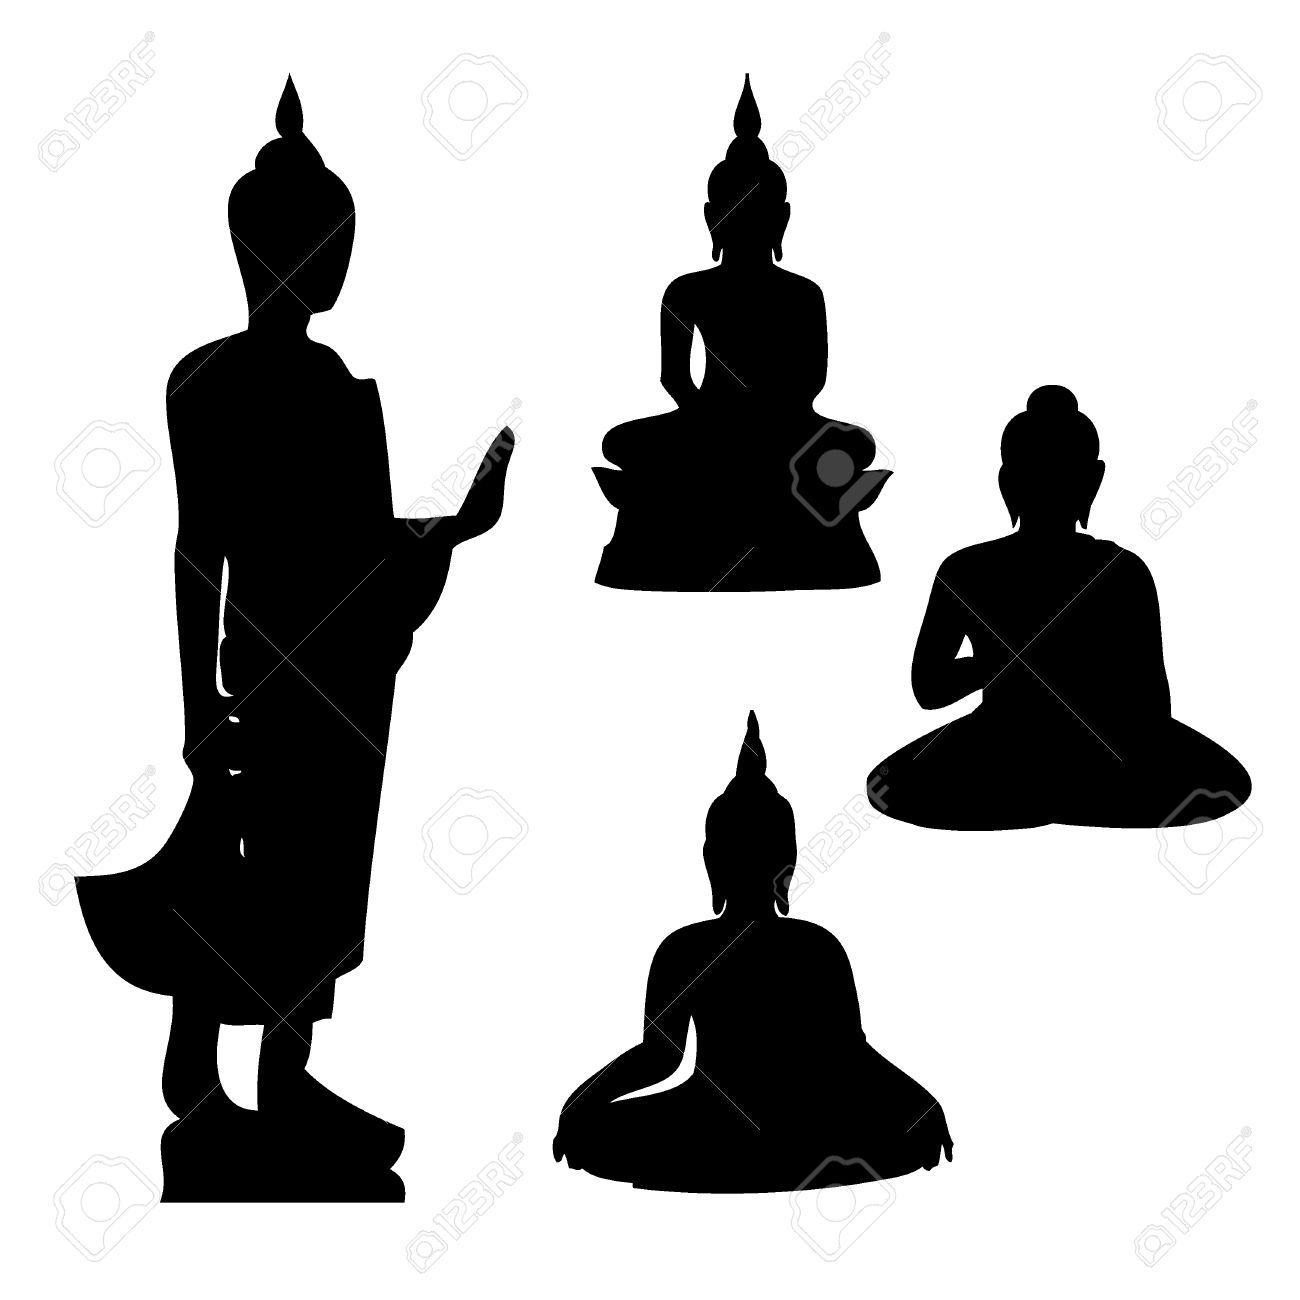 buddha vector royalty free cliparts vectors and stock illustration rh 123rf com buddha vector png buddha vector art